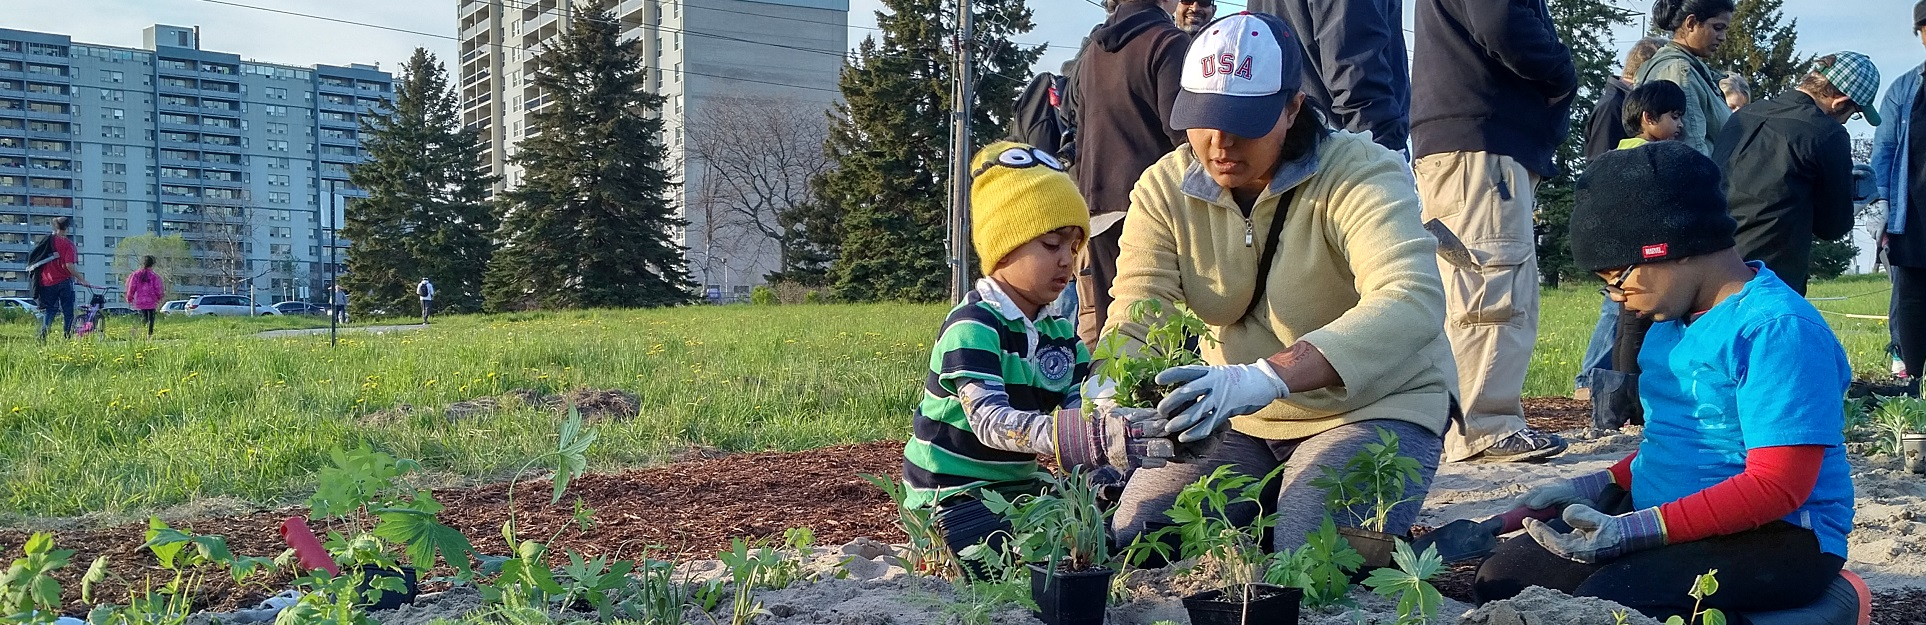 mother and children take part in Meadoway planting event